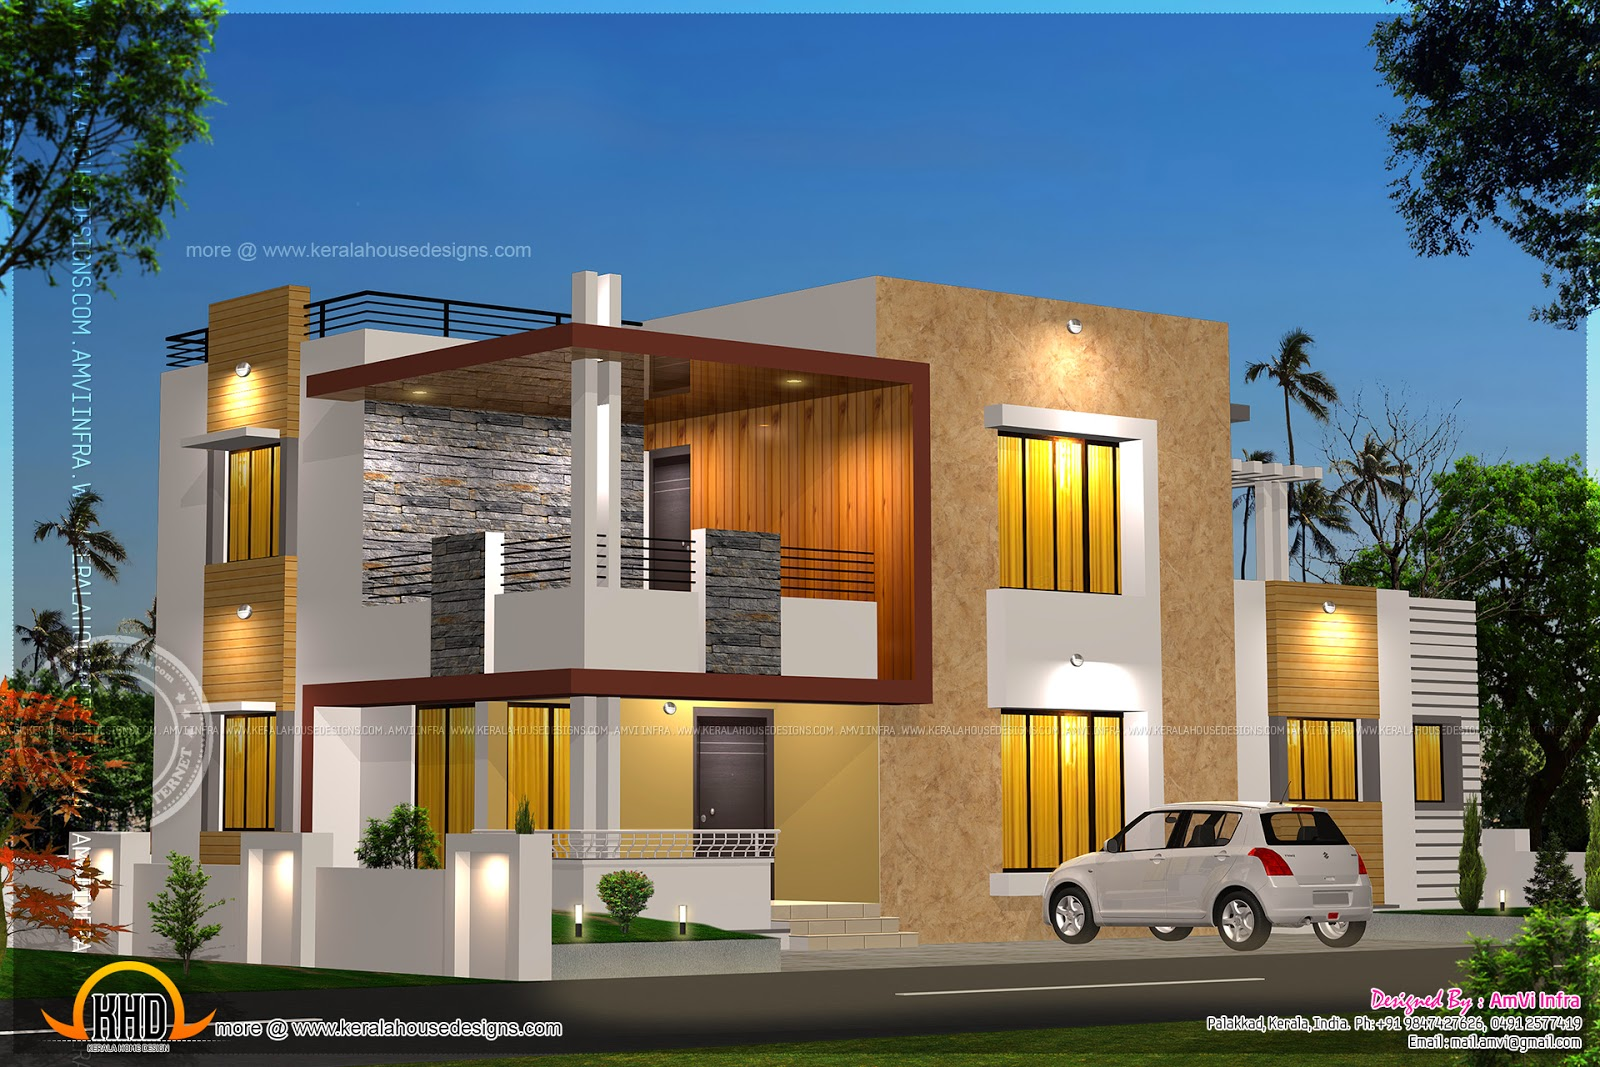 Floor plan and elevation of modern house home kerala plans for House design indian style plan and elevation